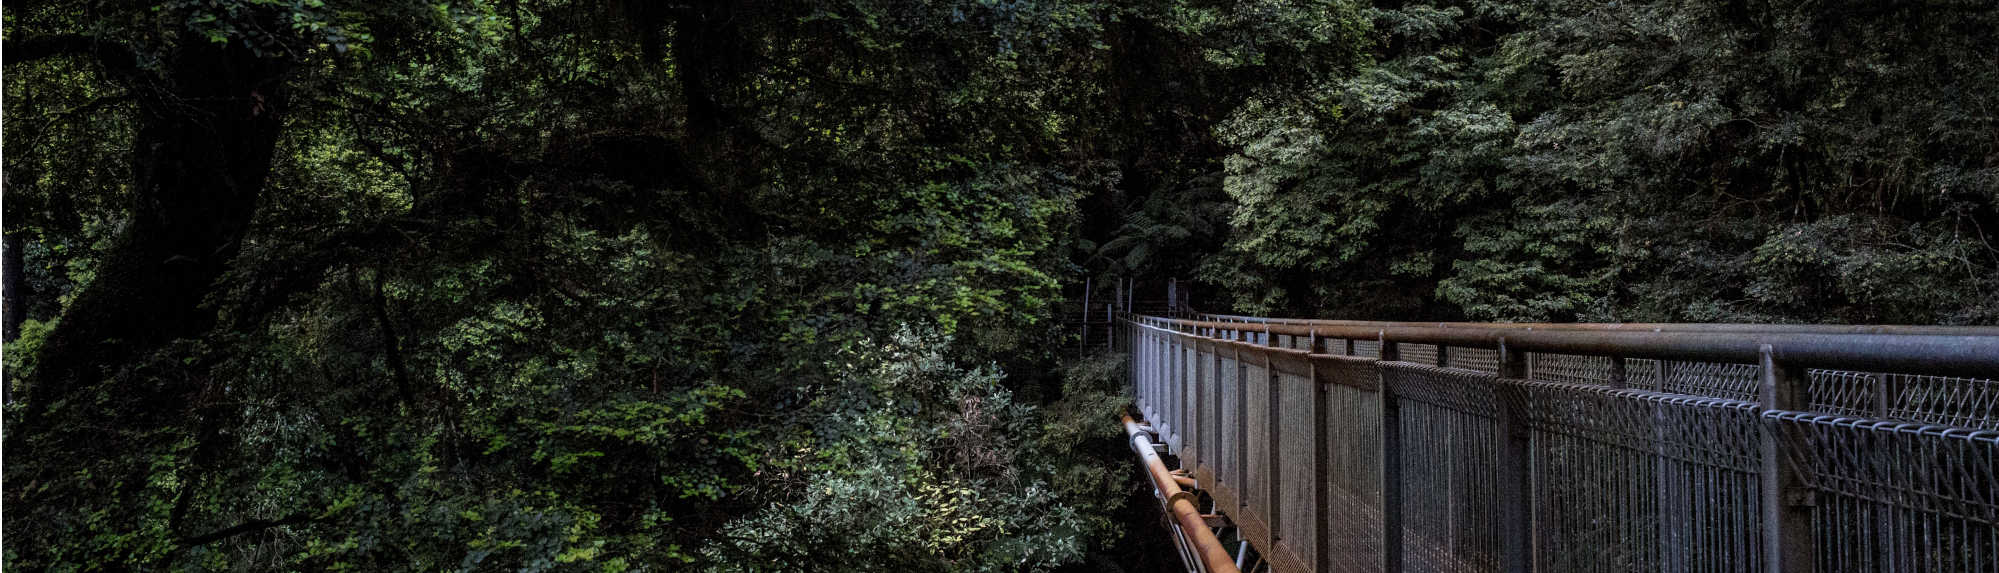 Why You Should Visit the Great Otway National Park